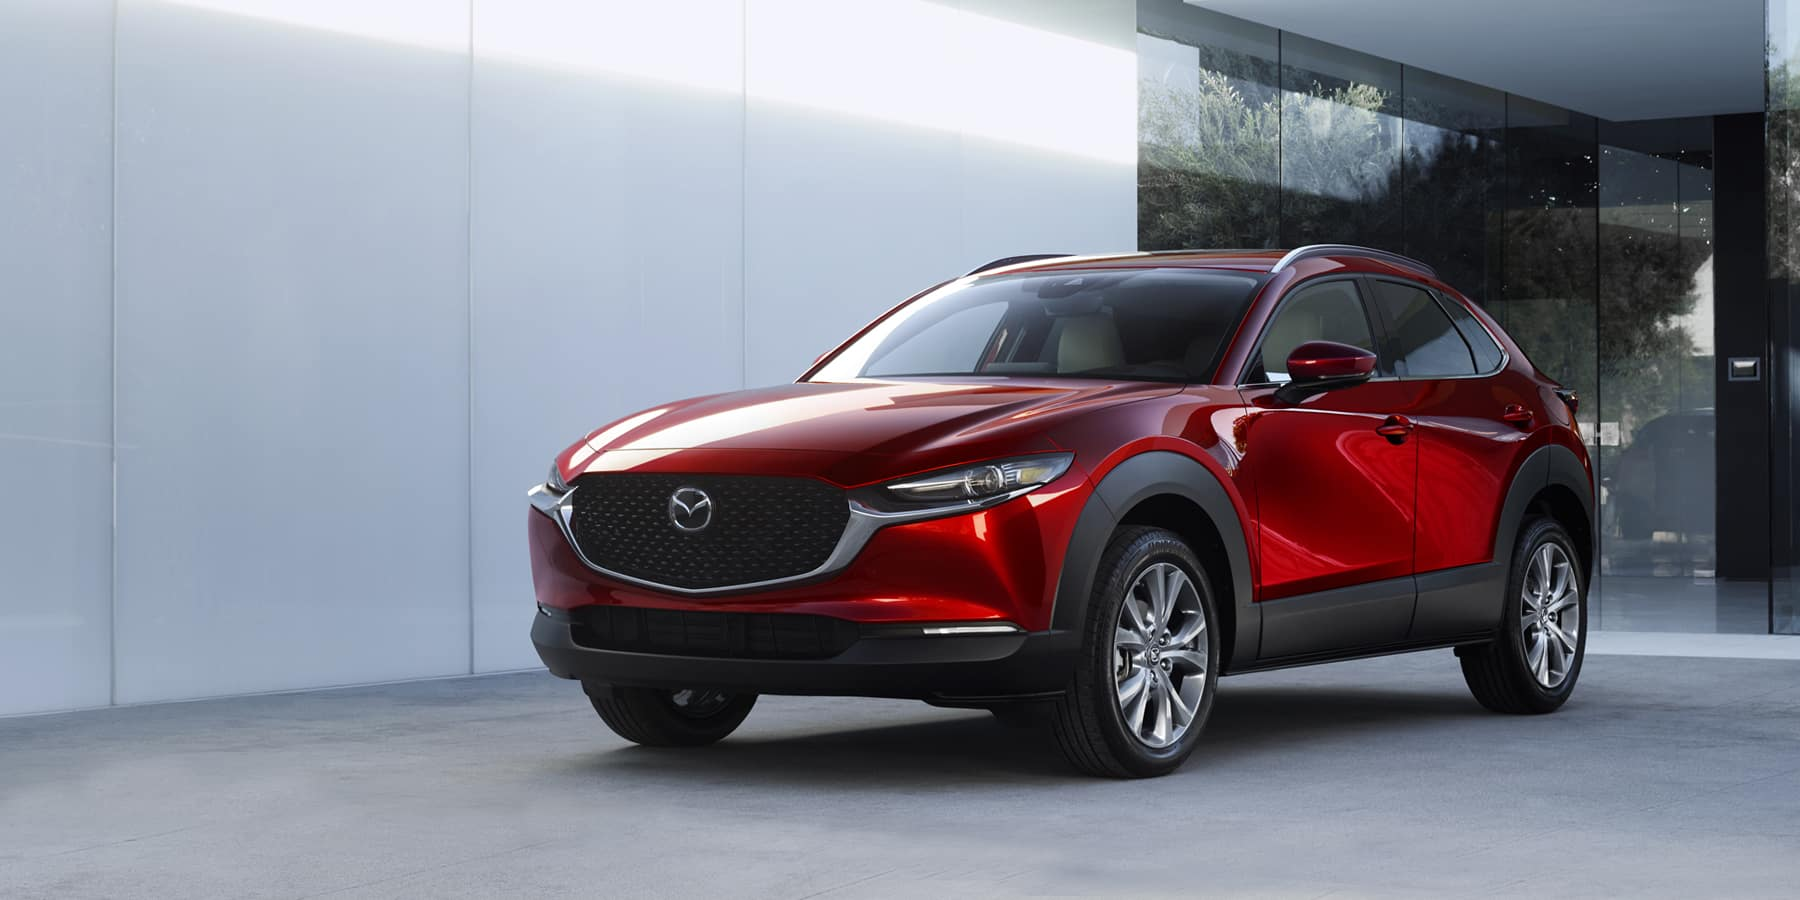 2020 Mazda CX-30 for sale near Burnsville, MN